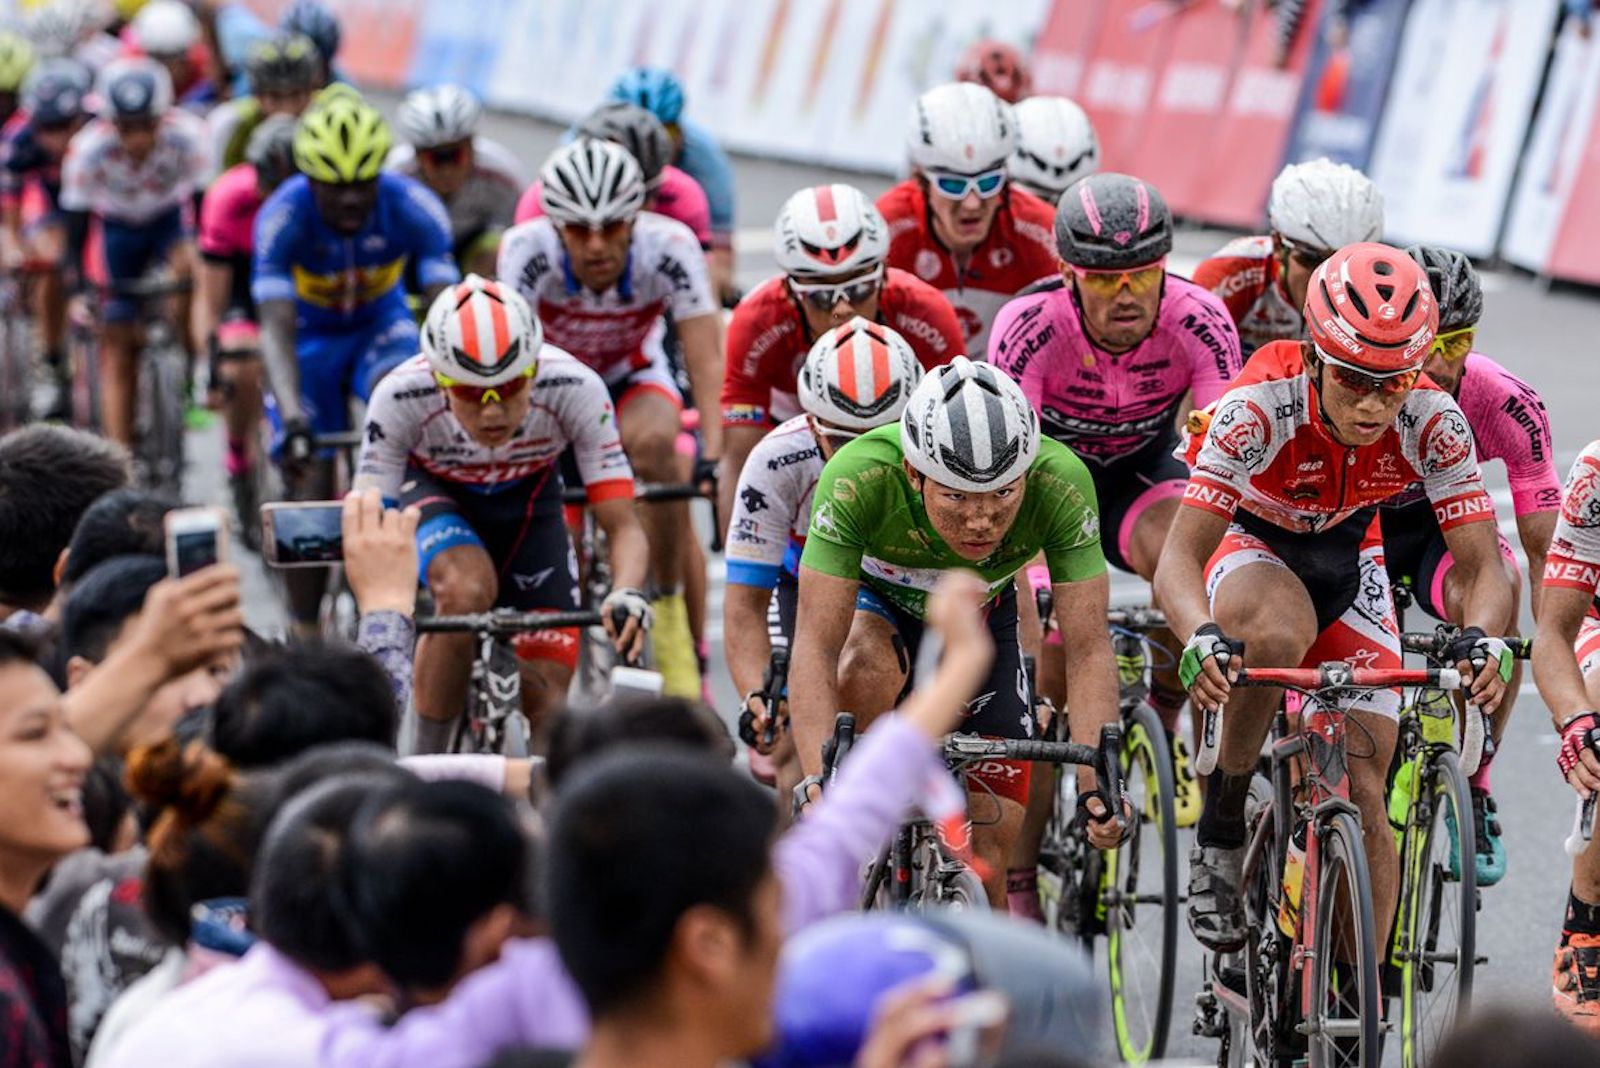 """Chen Xu Jie, China. """"Topic: Dirt Circle. The last stage of Tour of Fuzhou, it rained before the race which made the road was wet and dirty. After several circles, all the dirt stick on the cyclists' faces."""" Professional. @neichanging"""